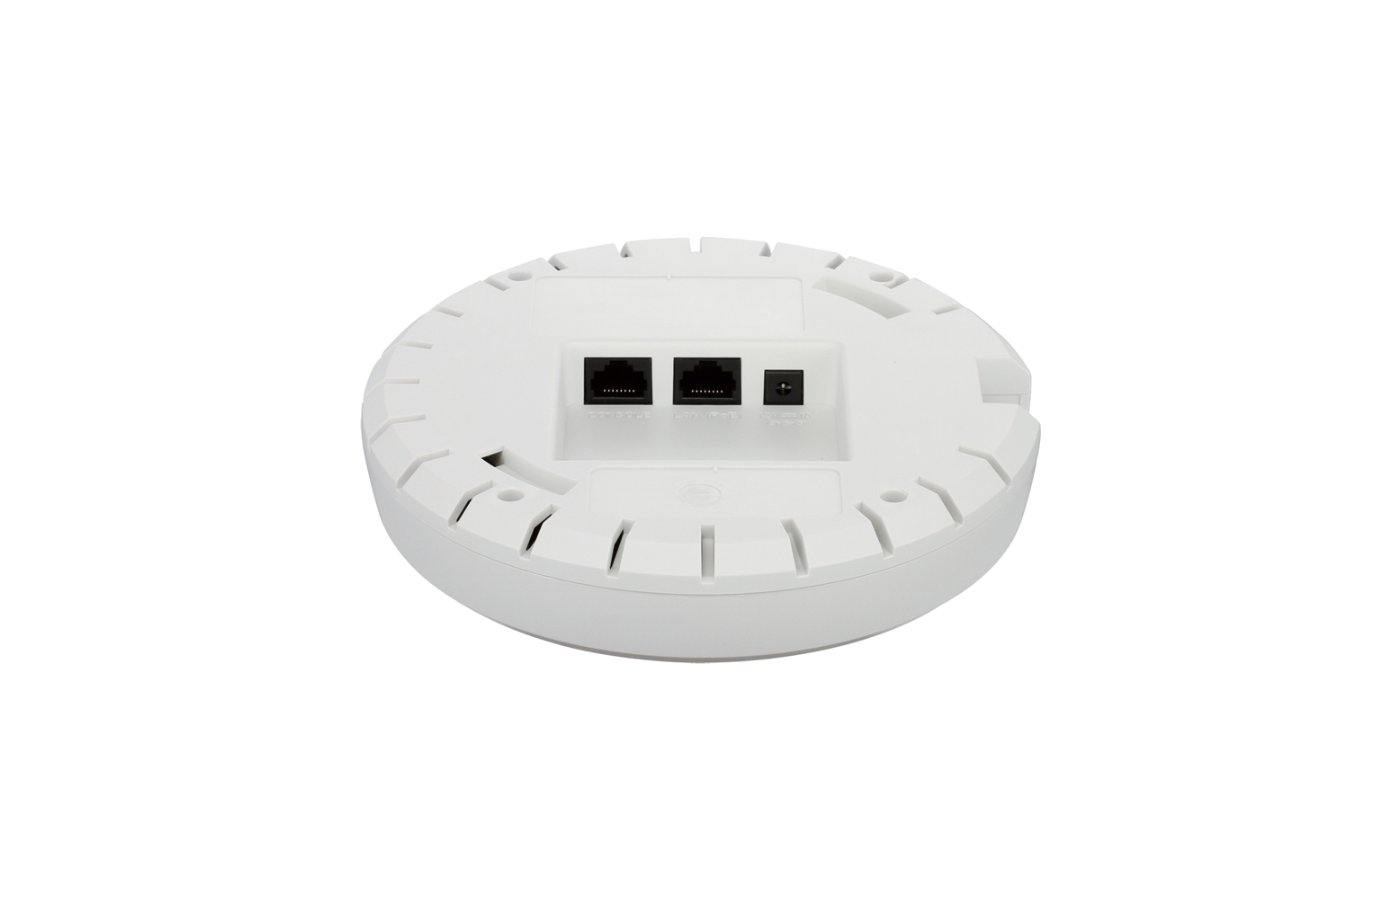 Сетевое оборудование D-Link DWL-2600AP/A1A/PC 1x LAN port 10/100BASE-TX, Wireless interface (up to 300Mbit/s, 2x2 MIMO) 8